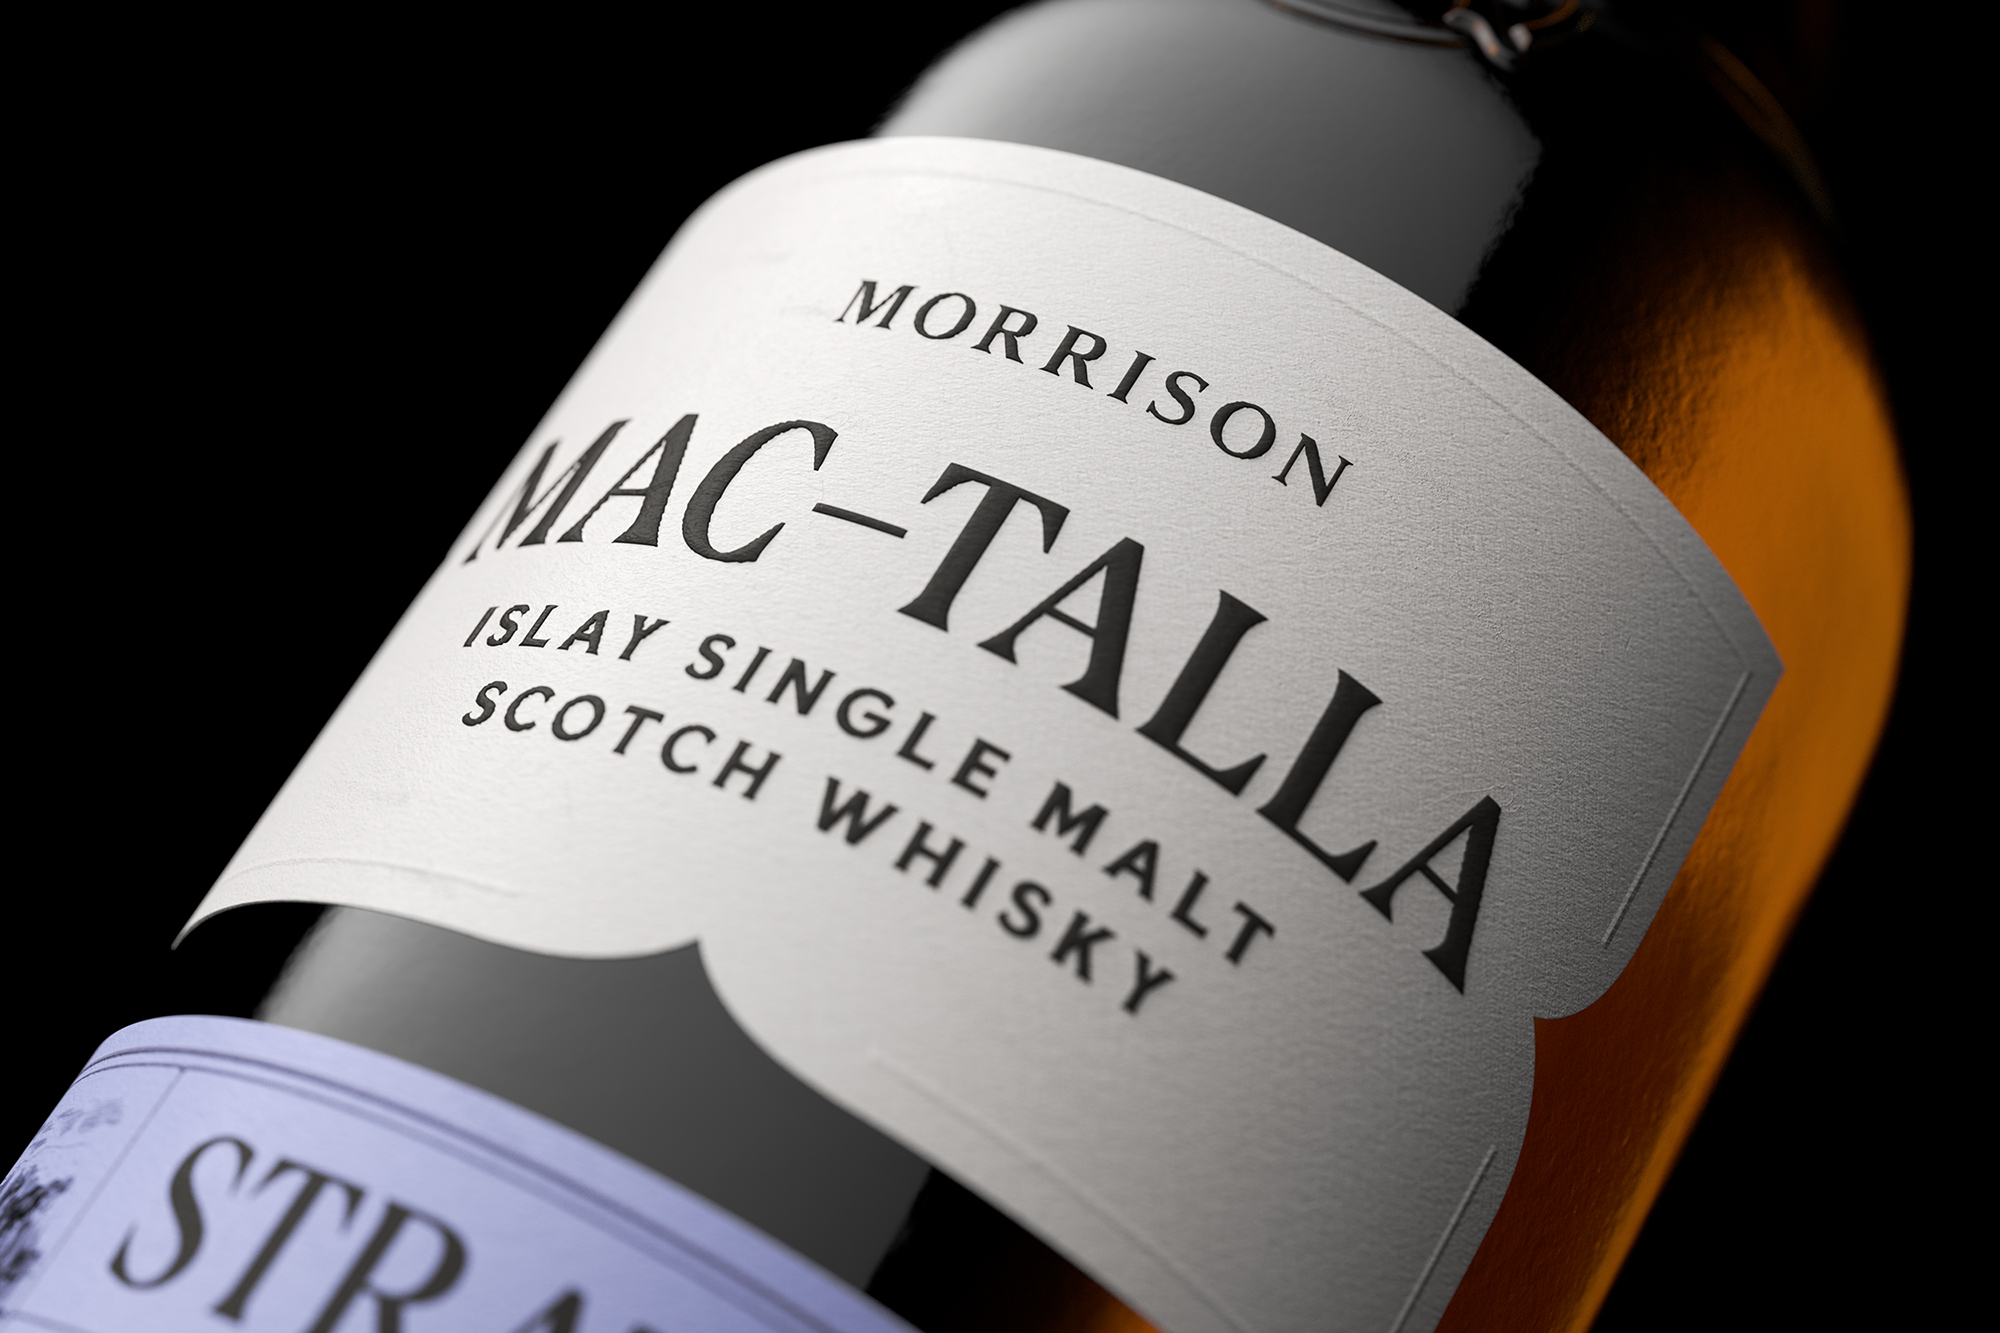 Thirst Craft Create Illustration and Packaging Design for Mac-Talla Islay Single Malt Scotch Whisky Range